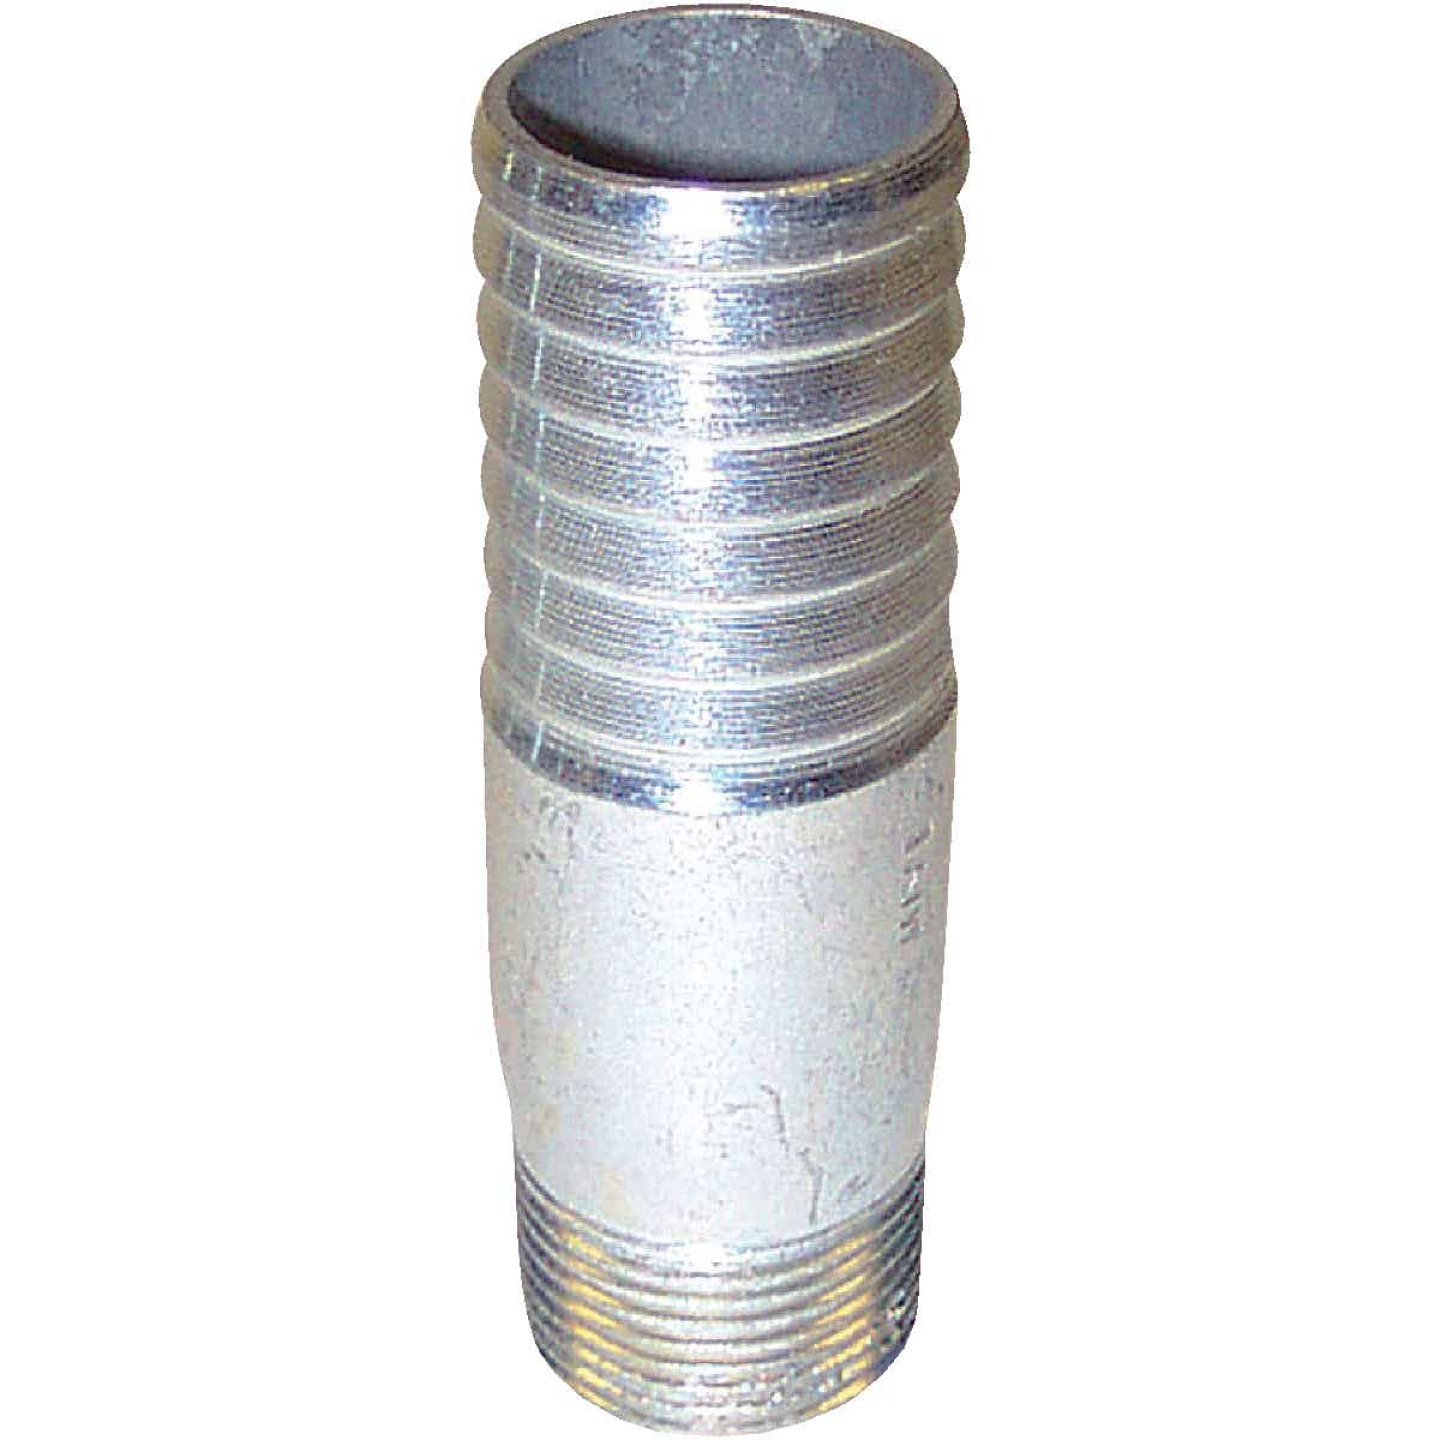 Merrill 1 In. Insert x 1 In. MIP Threaded Galvanized Adapter Image 1